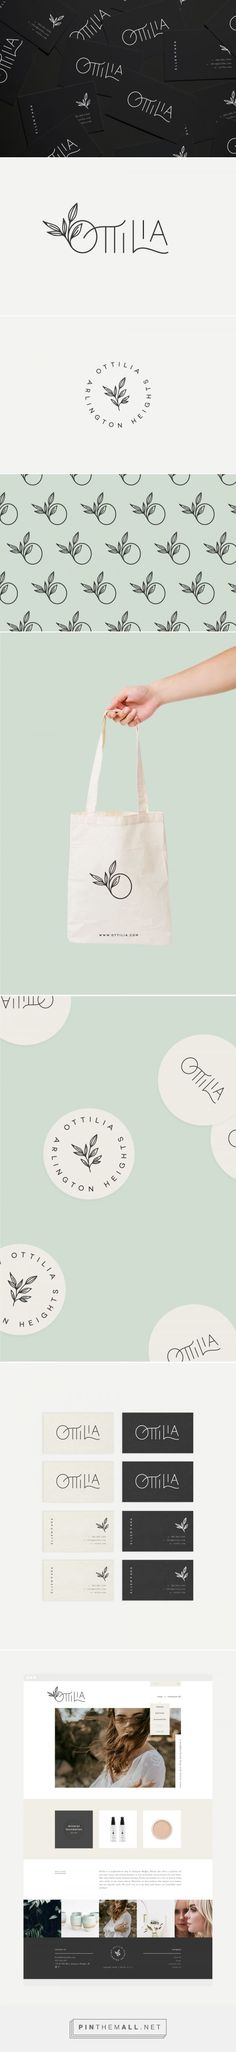 Ottilia Skincare Shop Branding by Rowan Made | Fivestar Branding Agency – Design and Branding Agency & Curated Inspiration Gallery